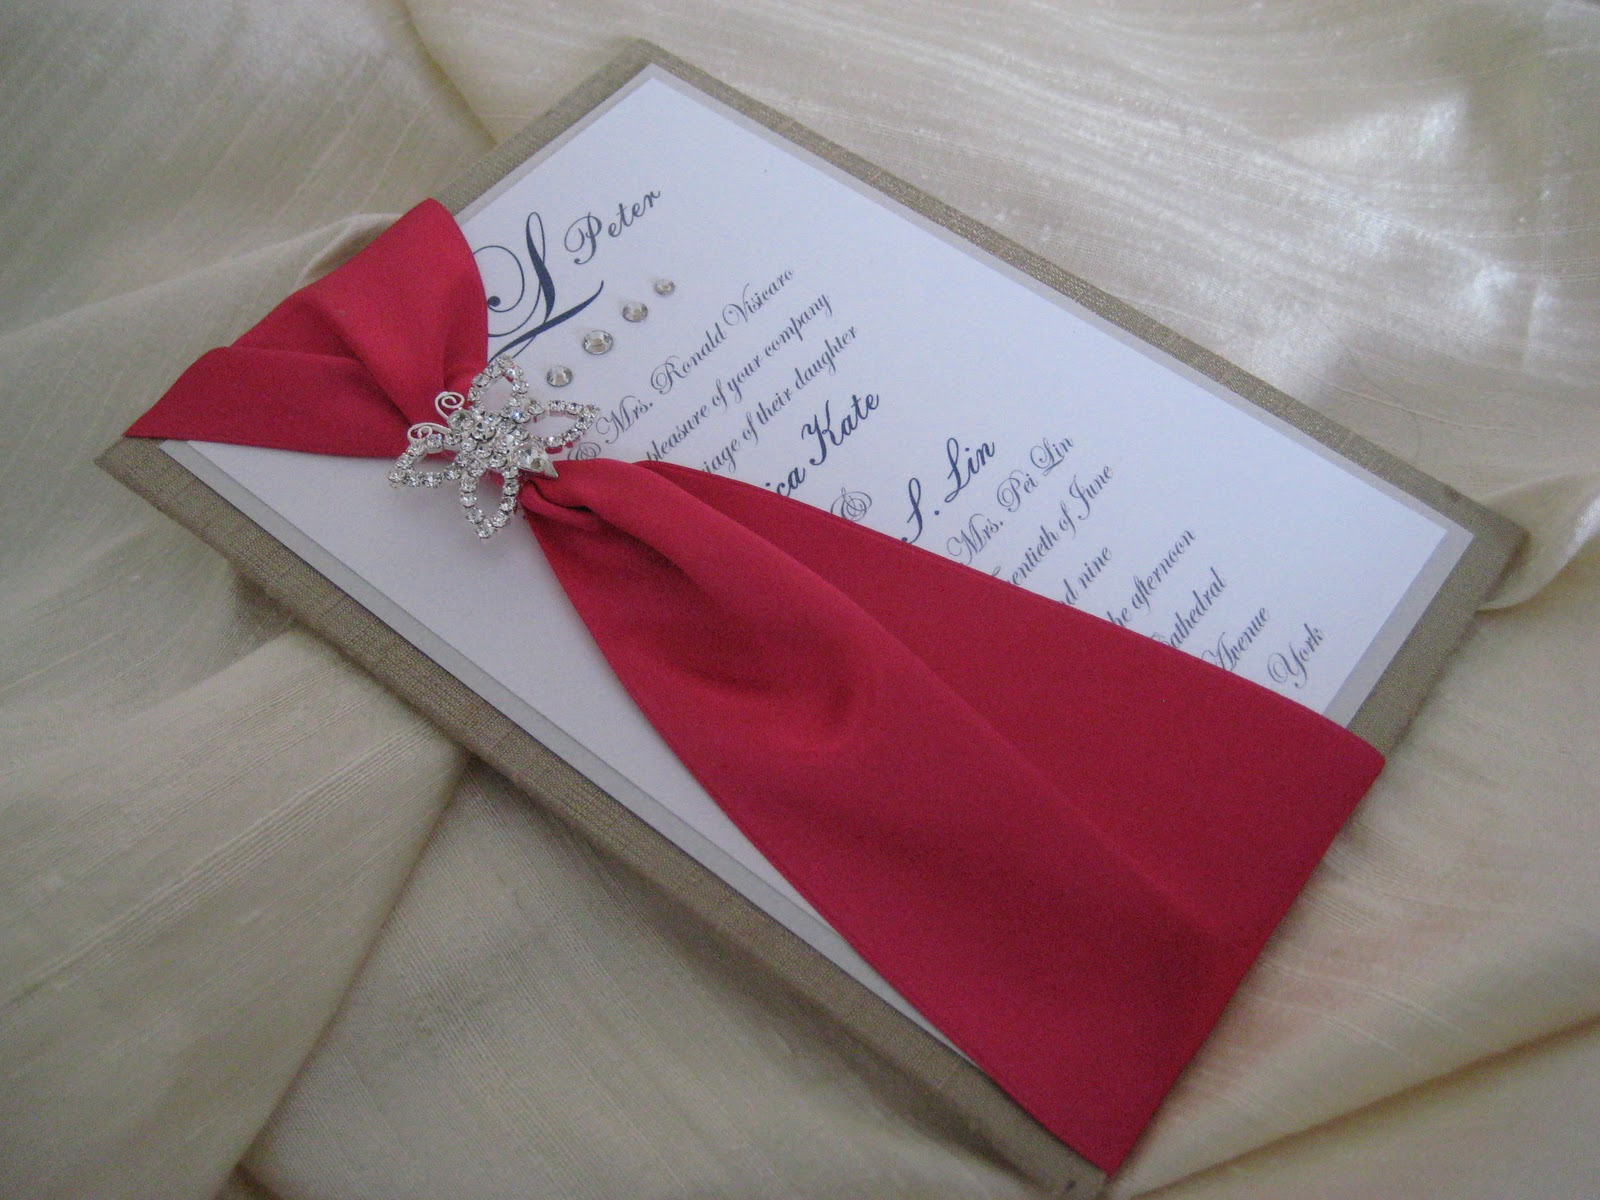 Revelry Invitation Studio Chatter: Love This! New Butterfly Silk Slide!